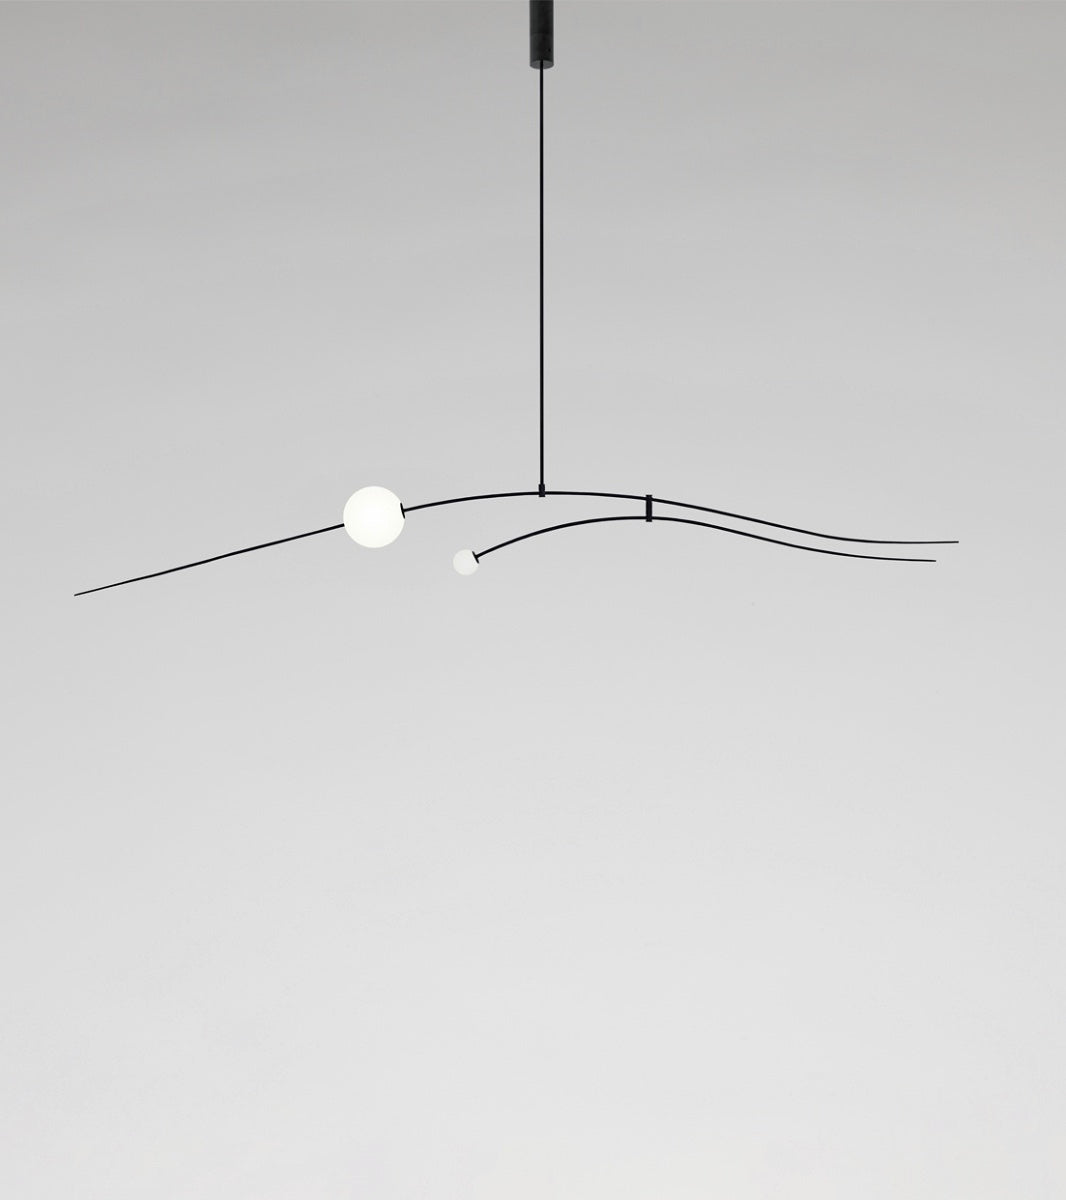 Mobile Chandelier 16 <br> by Michael Anastassiades